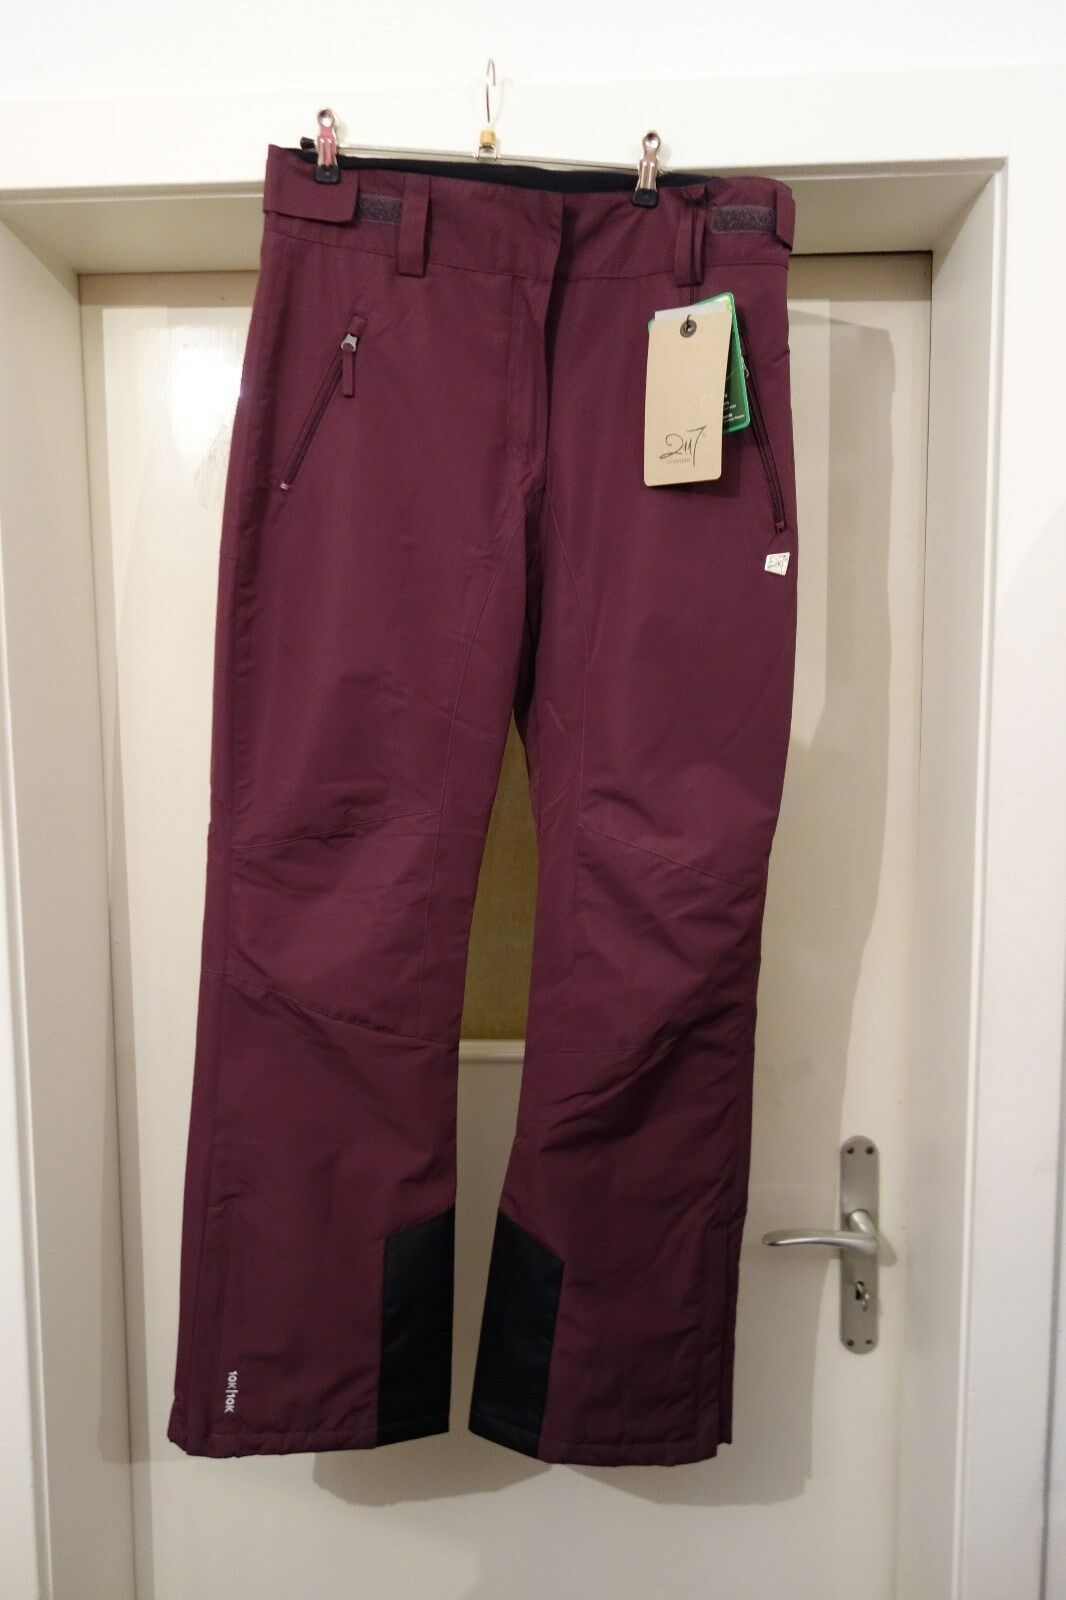 2117 of Sweden Dorris Light Padded Ski Pant Stalon - Skihose, Größe 38